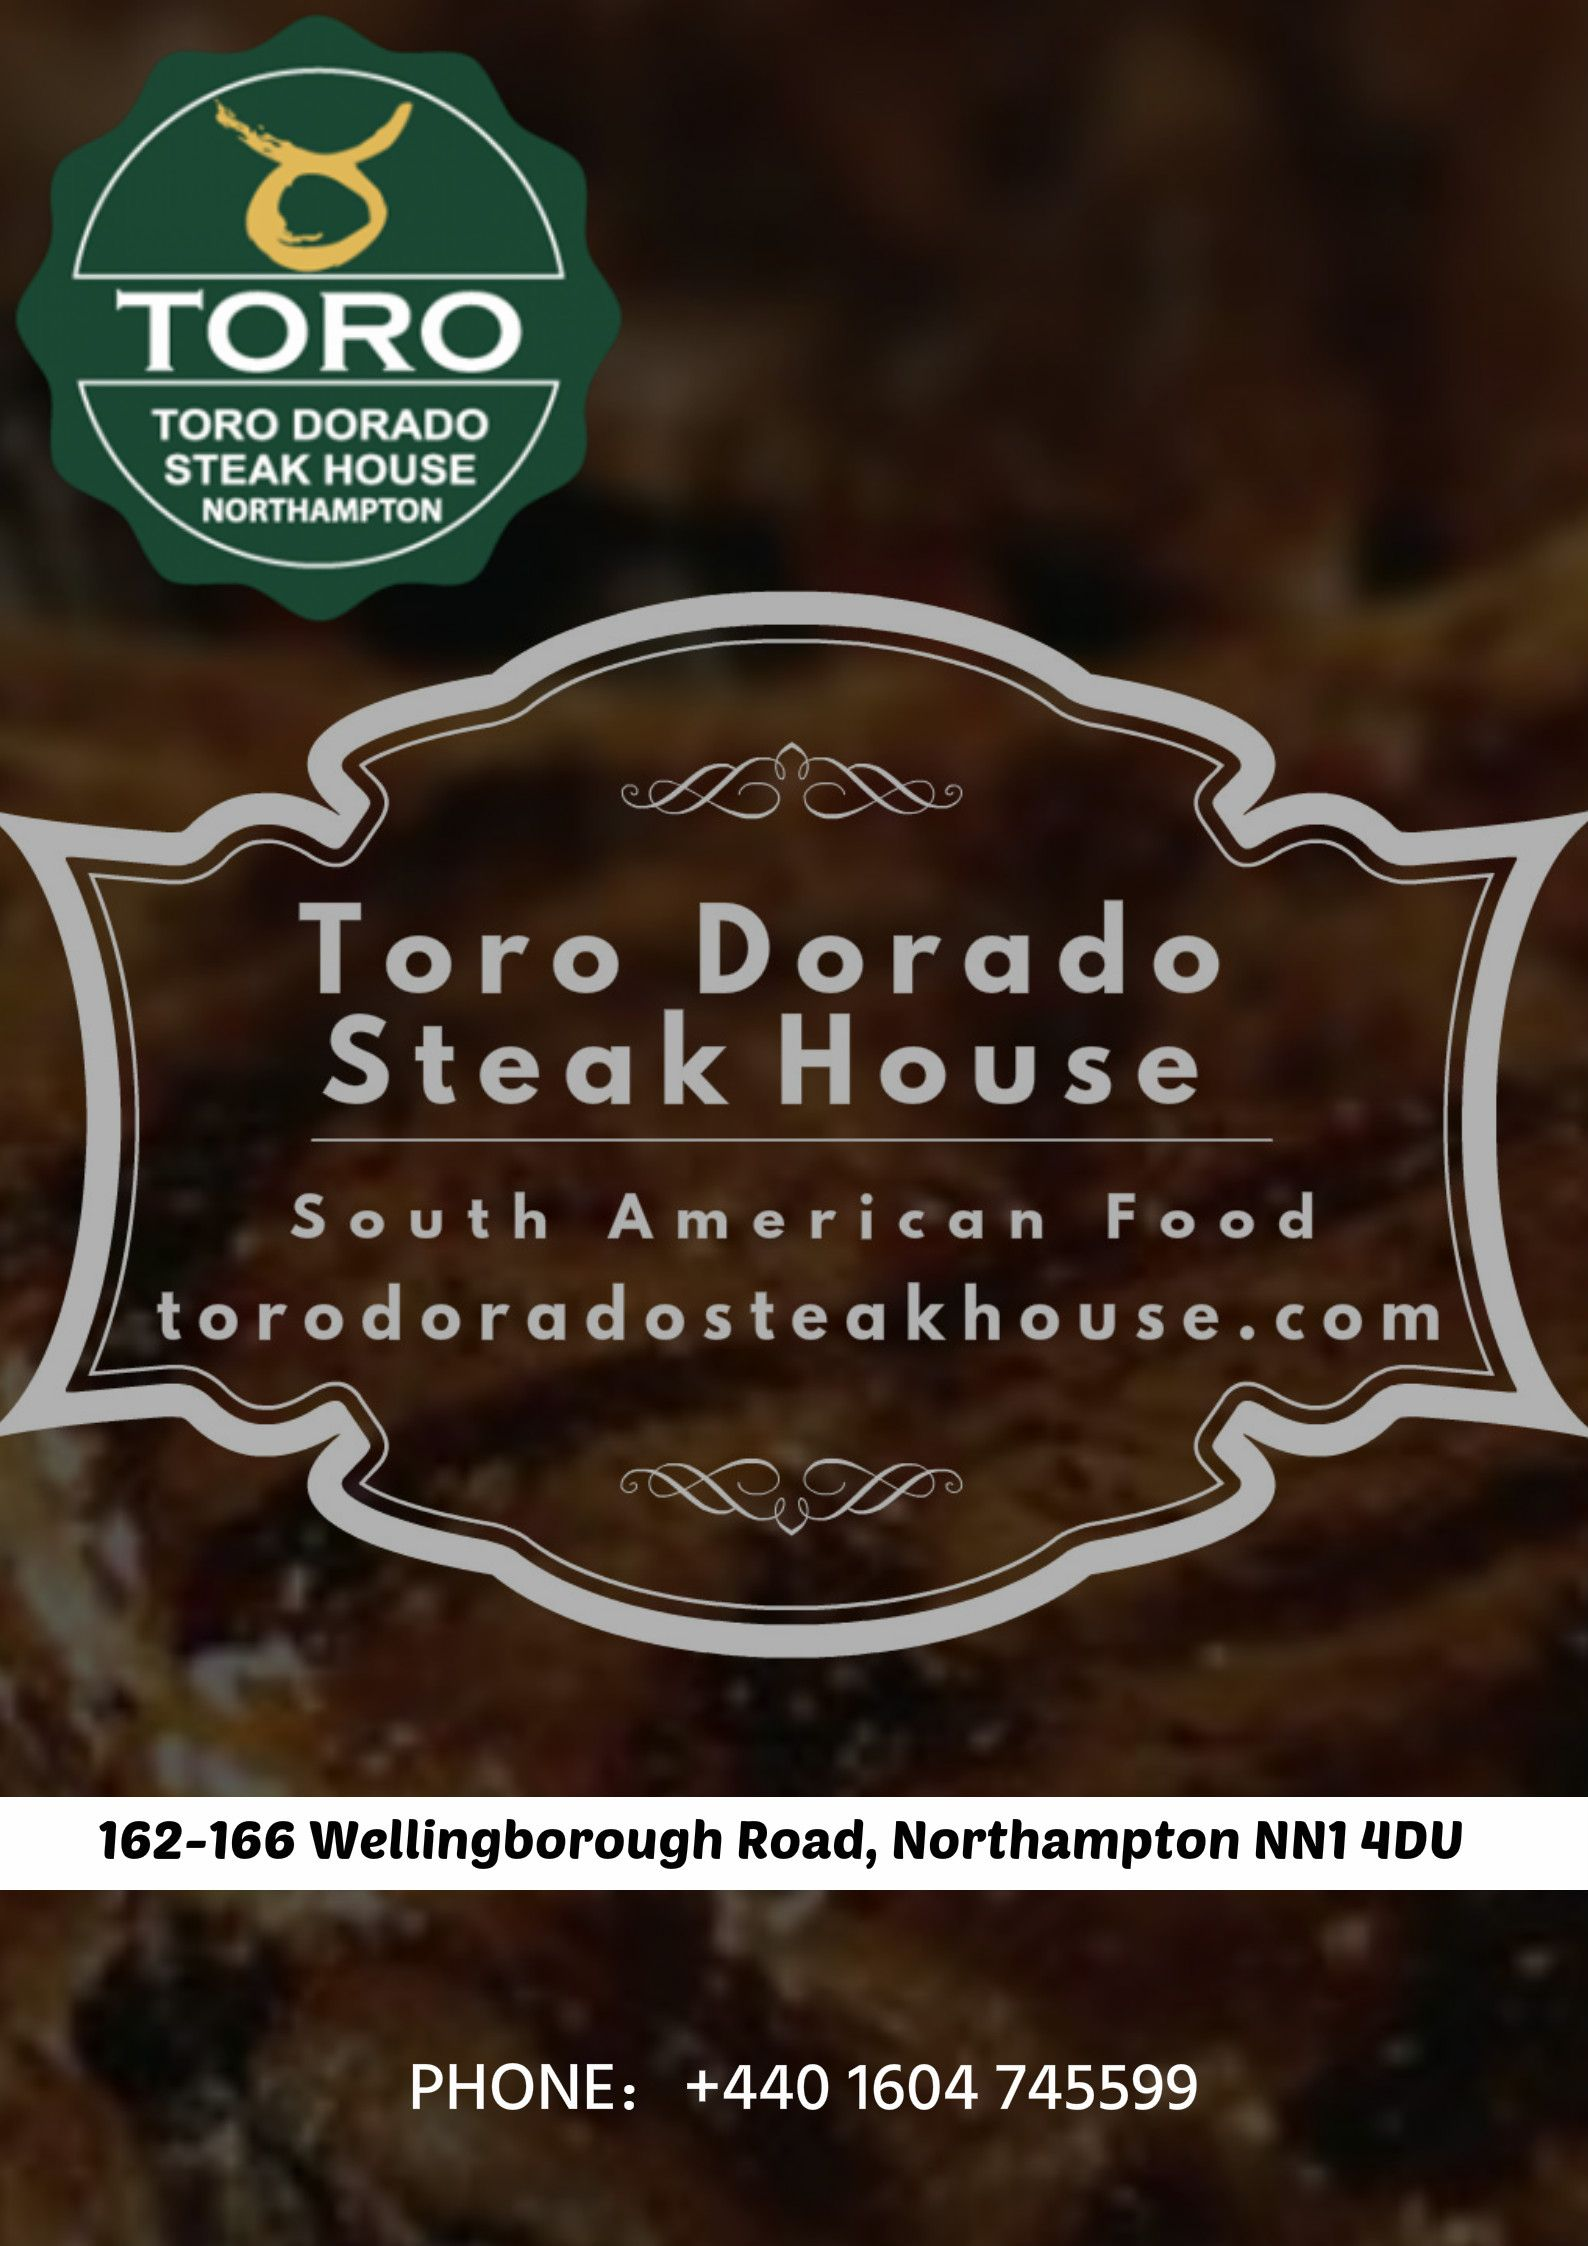 Toro Dorado Steak House Is The Reference Of Locals For High